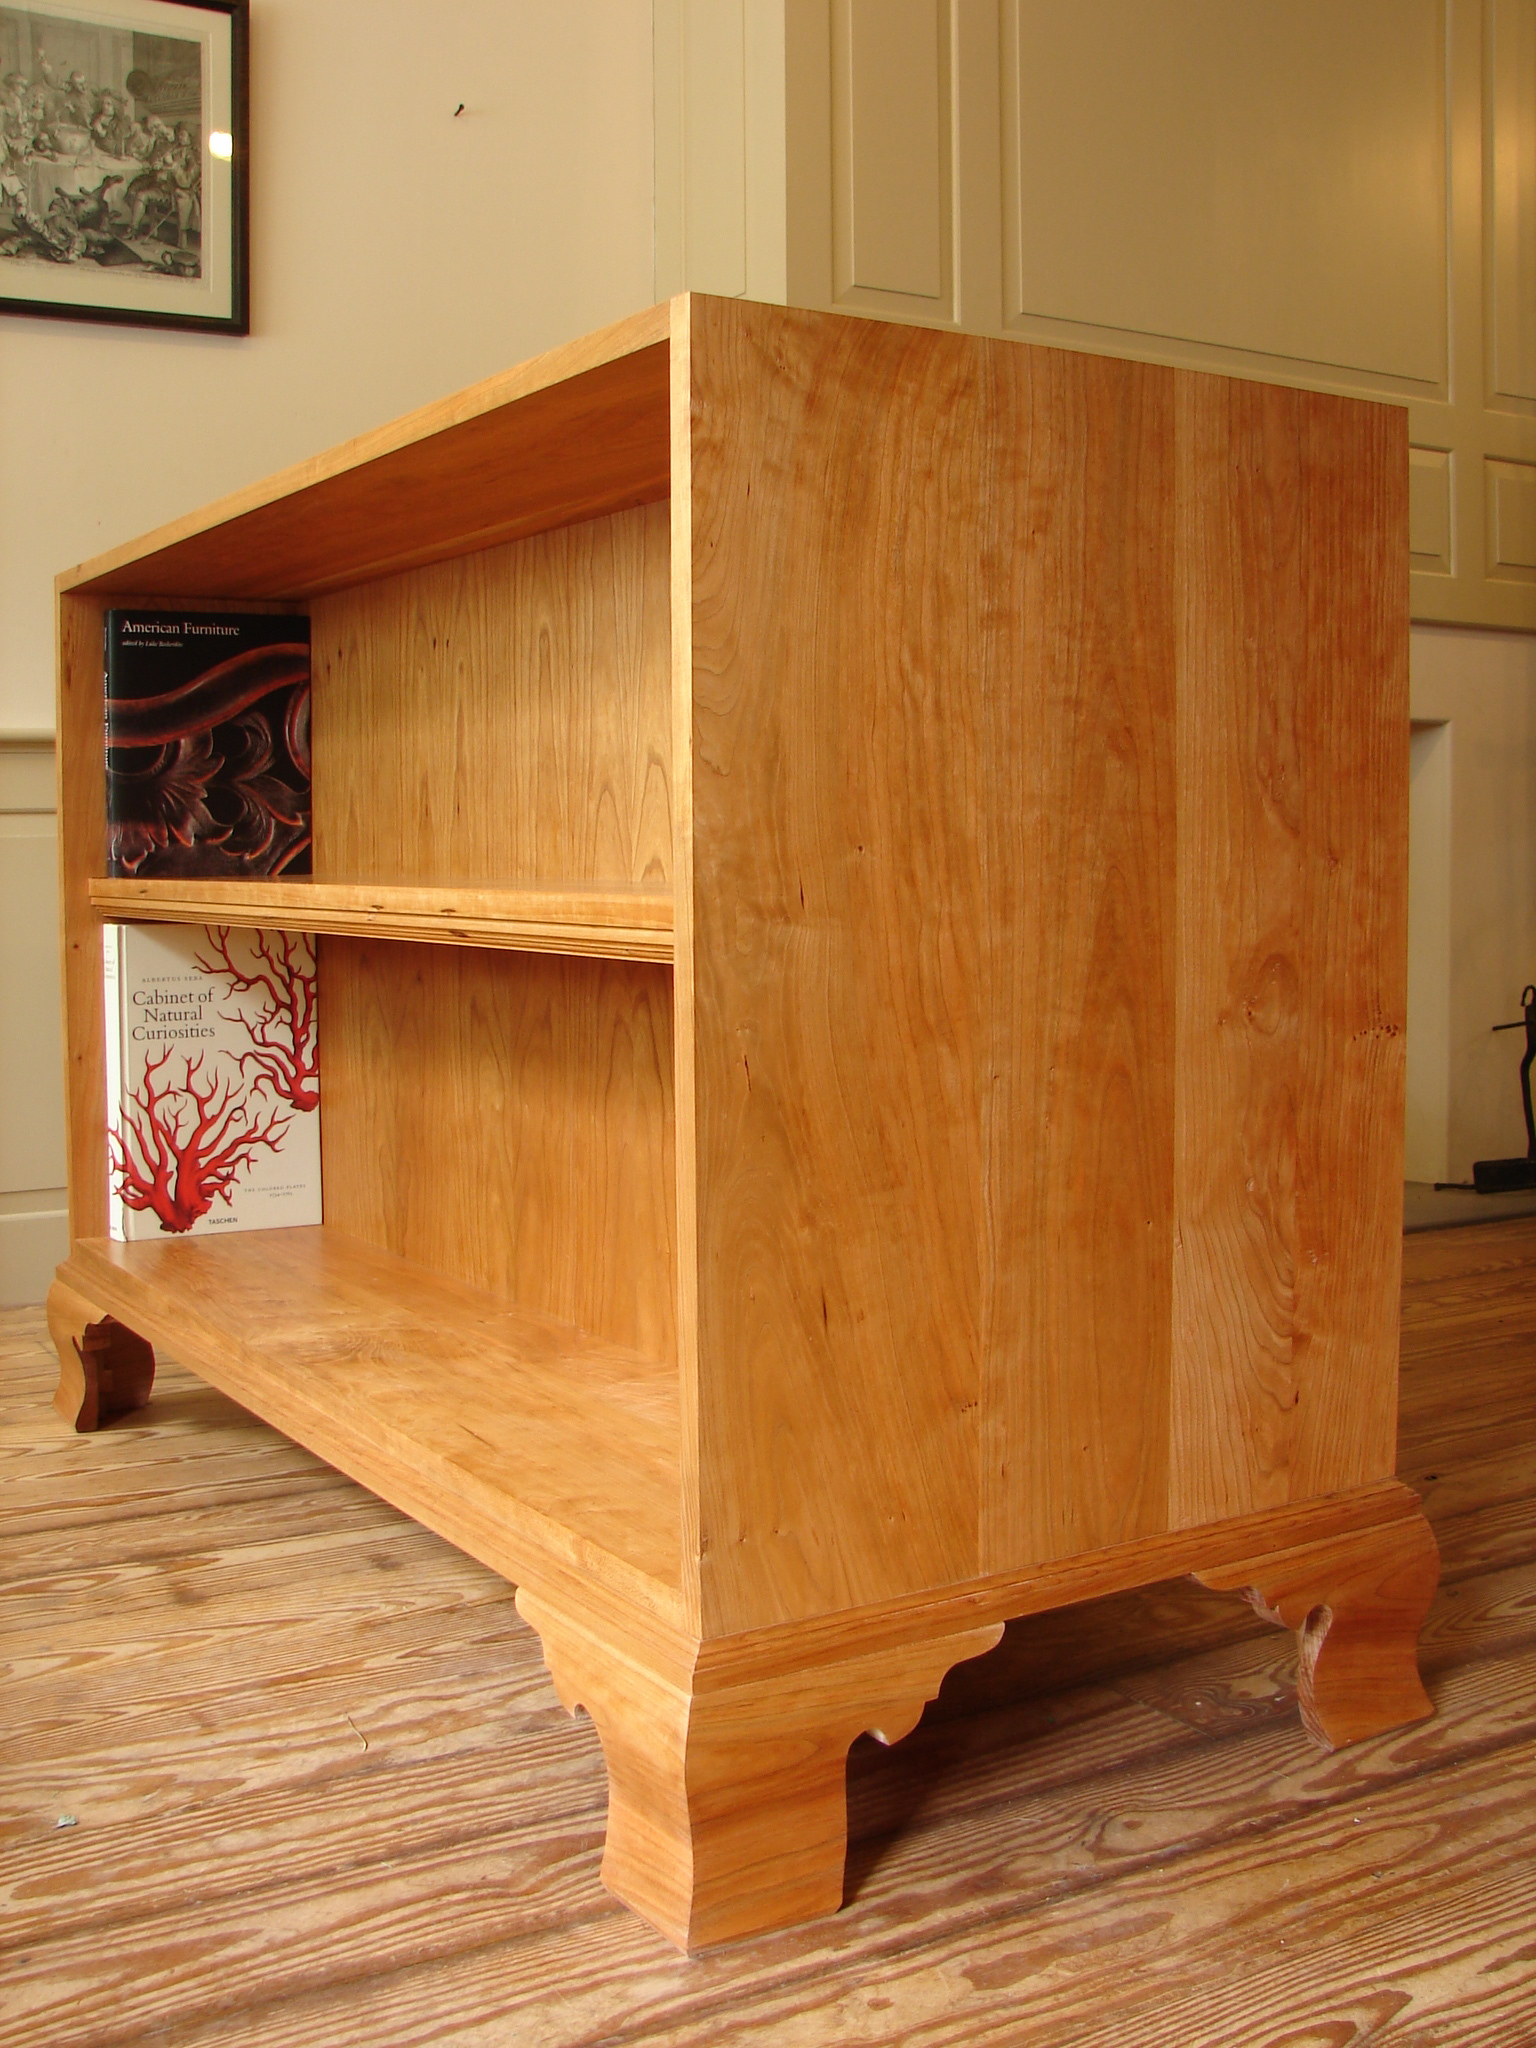 Double Sided Cabinet | Antickcabinet's Blog